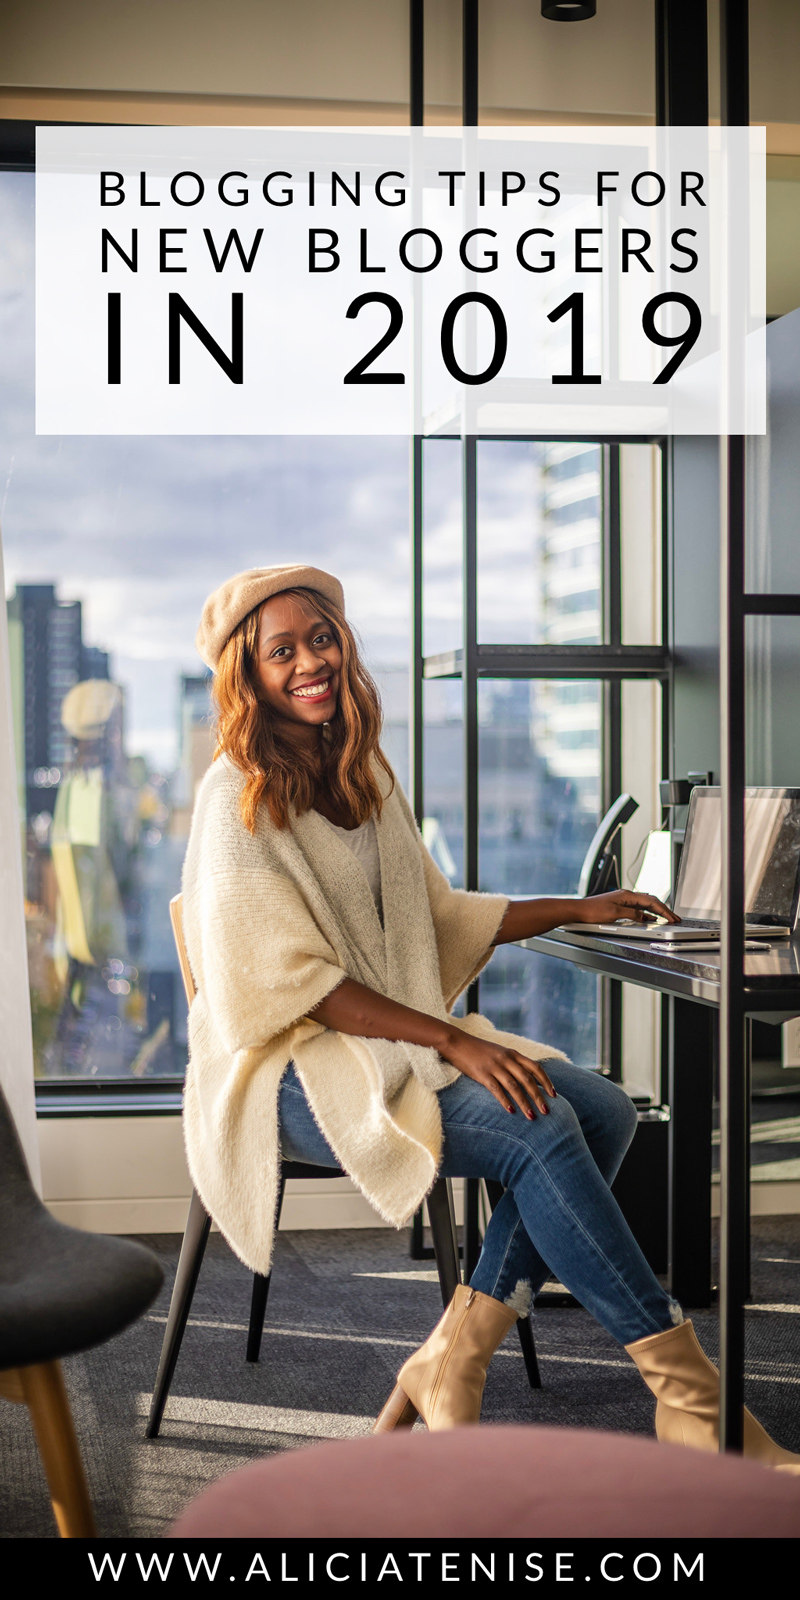 Instagram | Website | Pinterest | Facebook | My Top 3 Blogging Tips for a New Blogger in 2019 featured by top Virginia blogger Alicia Tenise